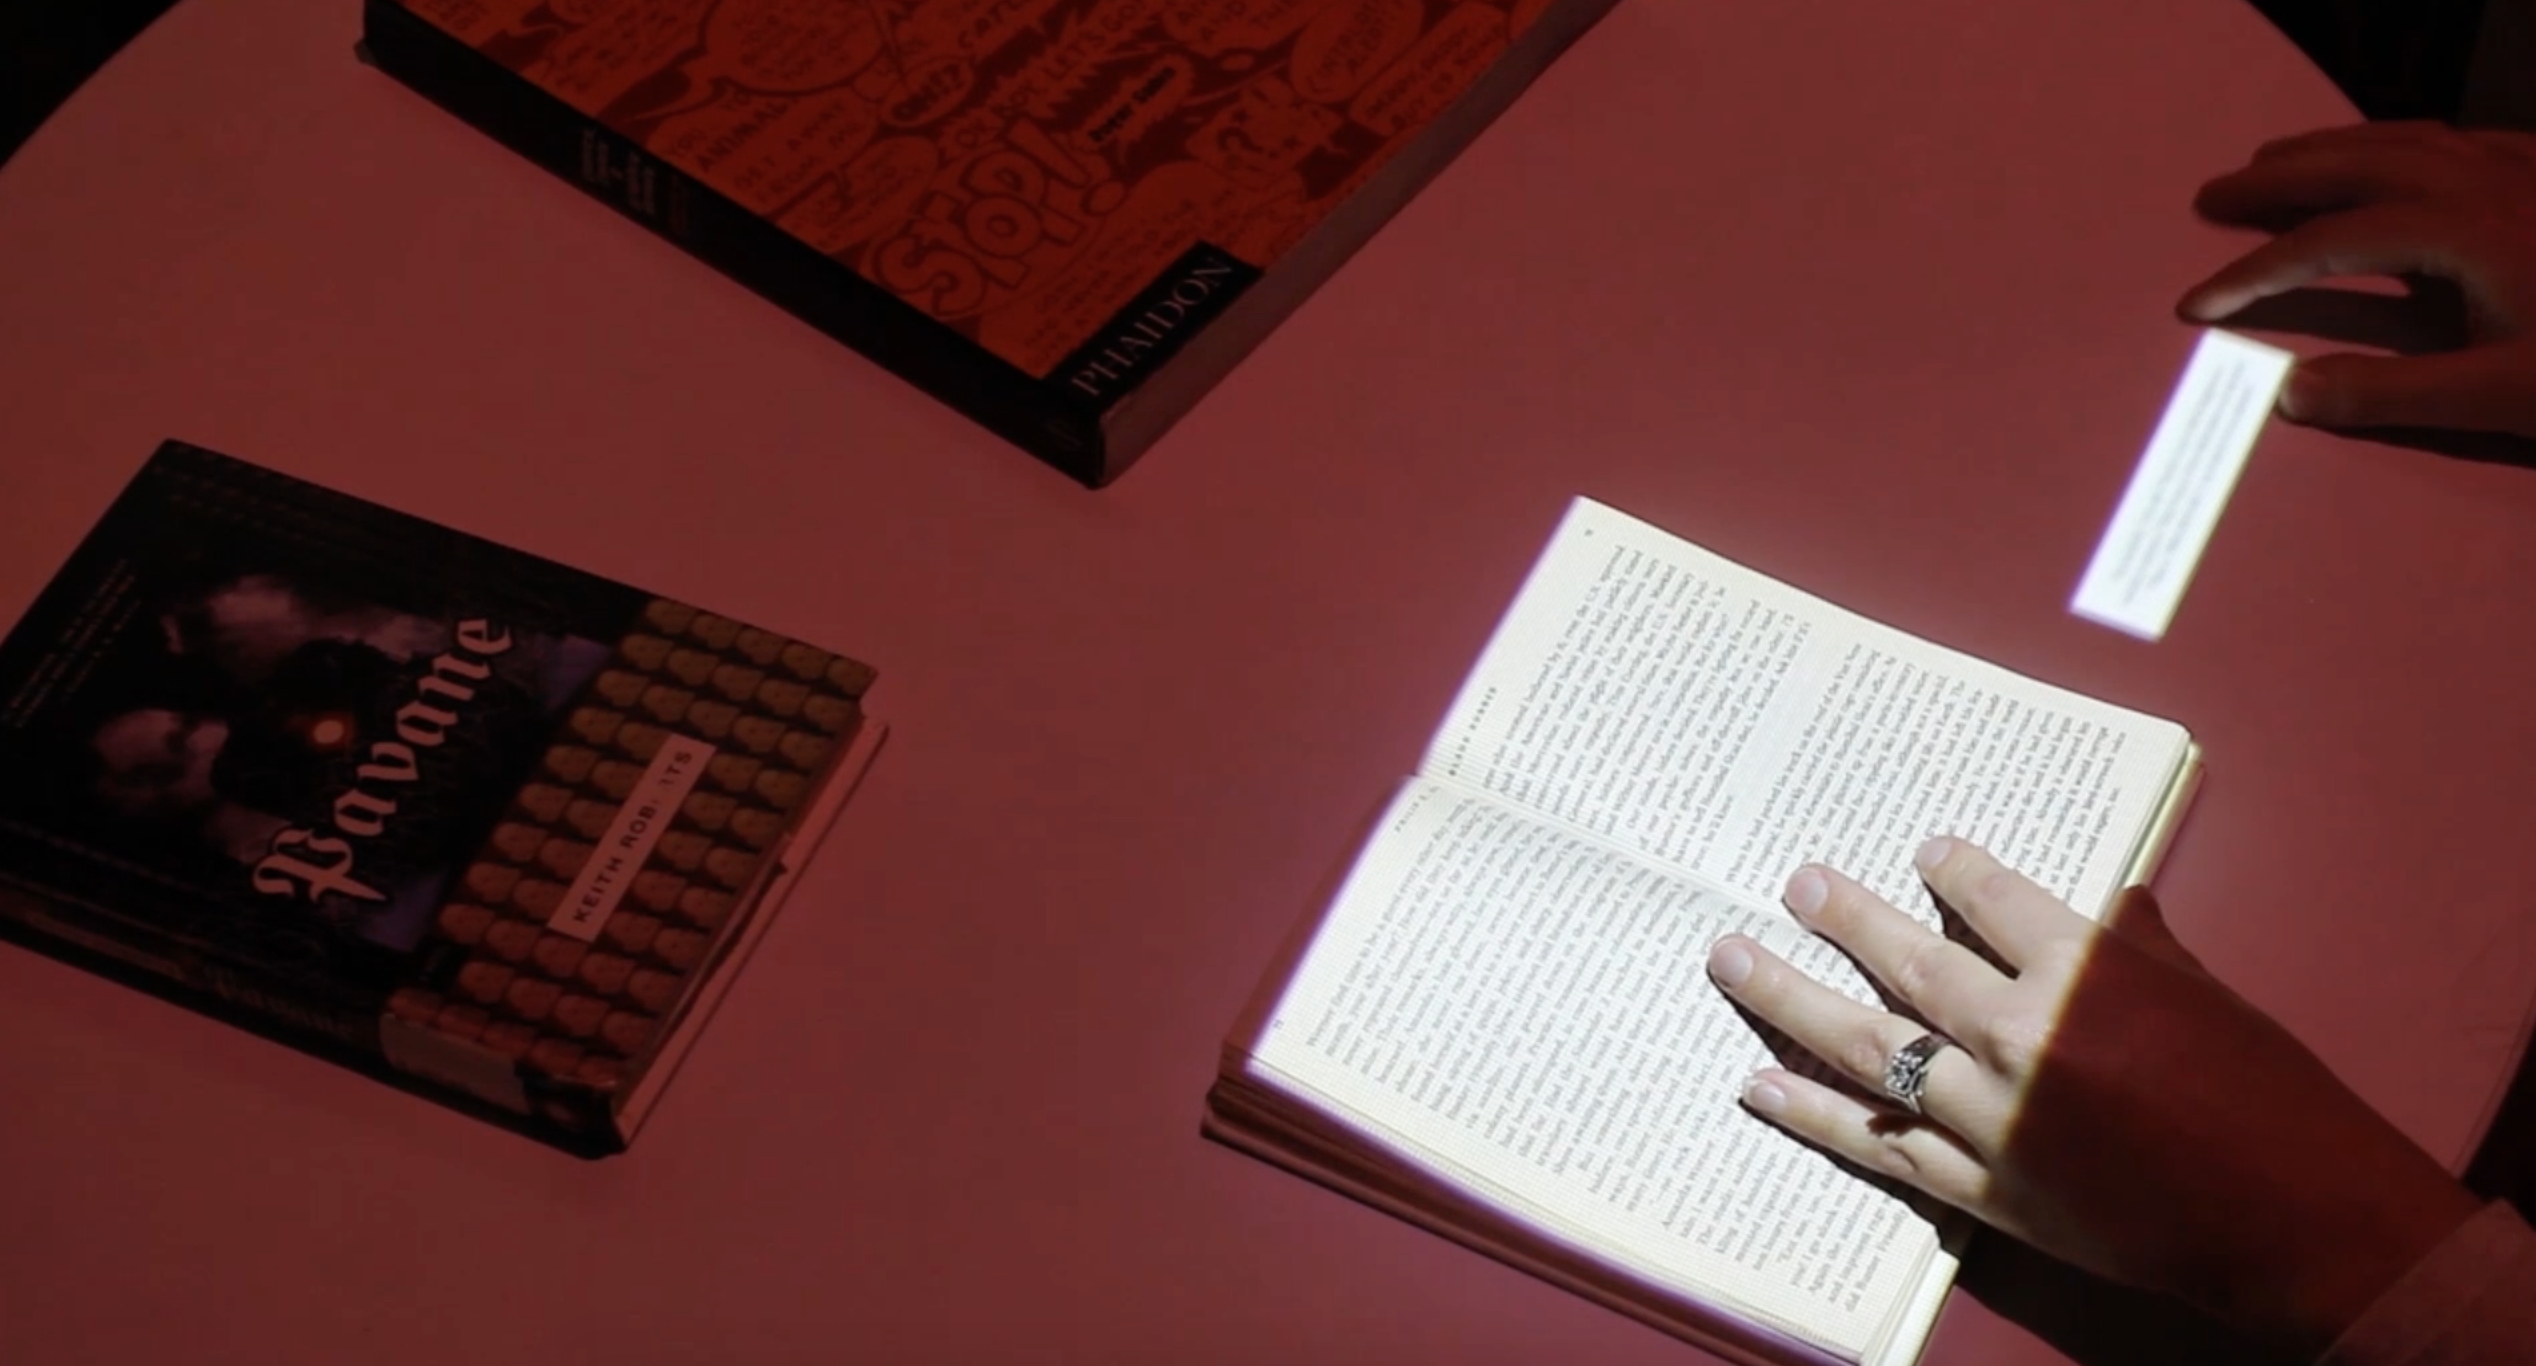 Augmented Reality and an enhanced reading experience